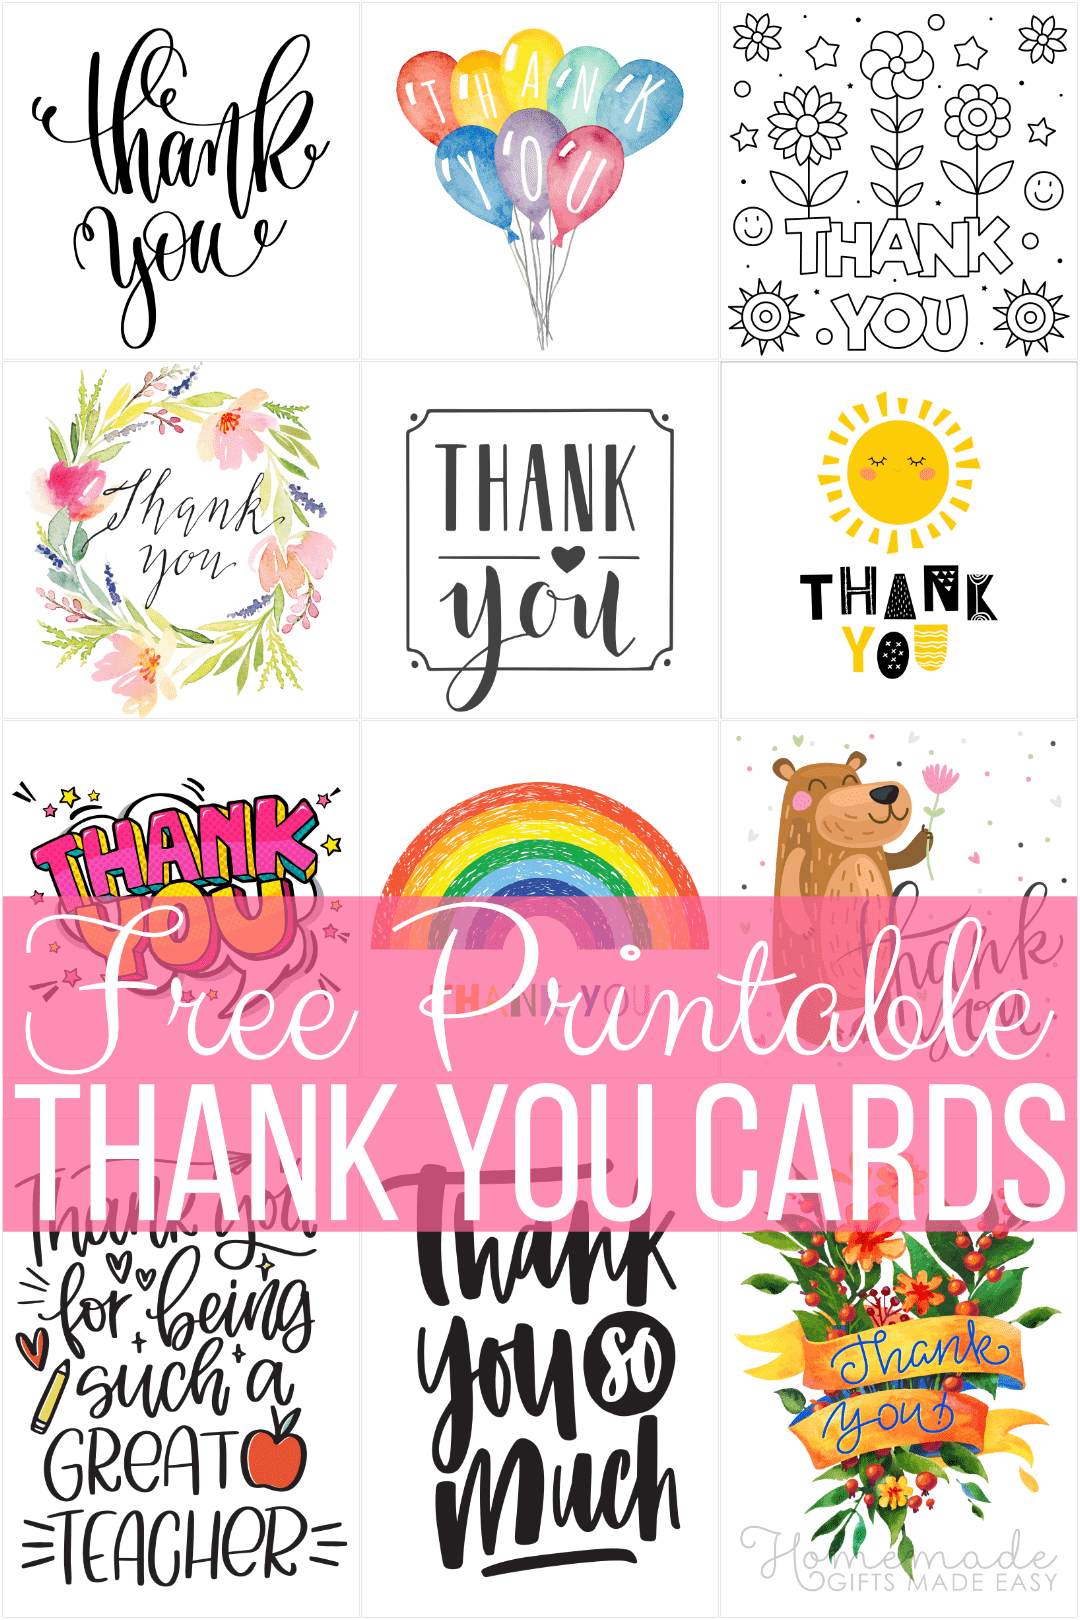 Free Printable Thank You Cards - 48 designs